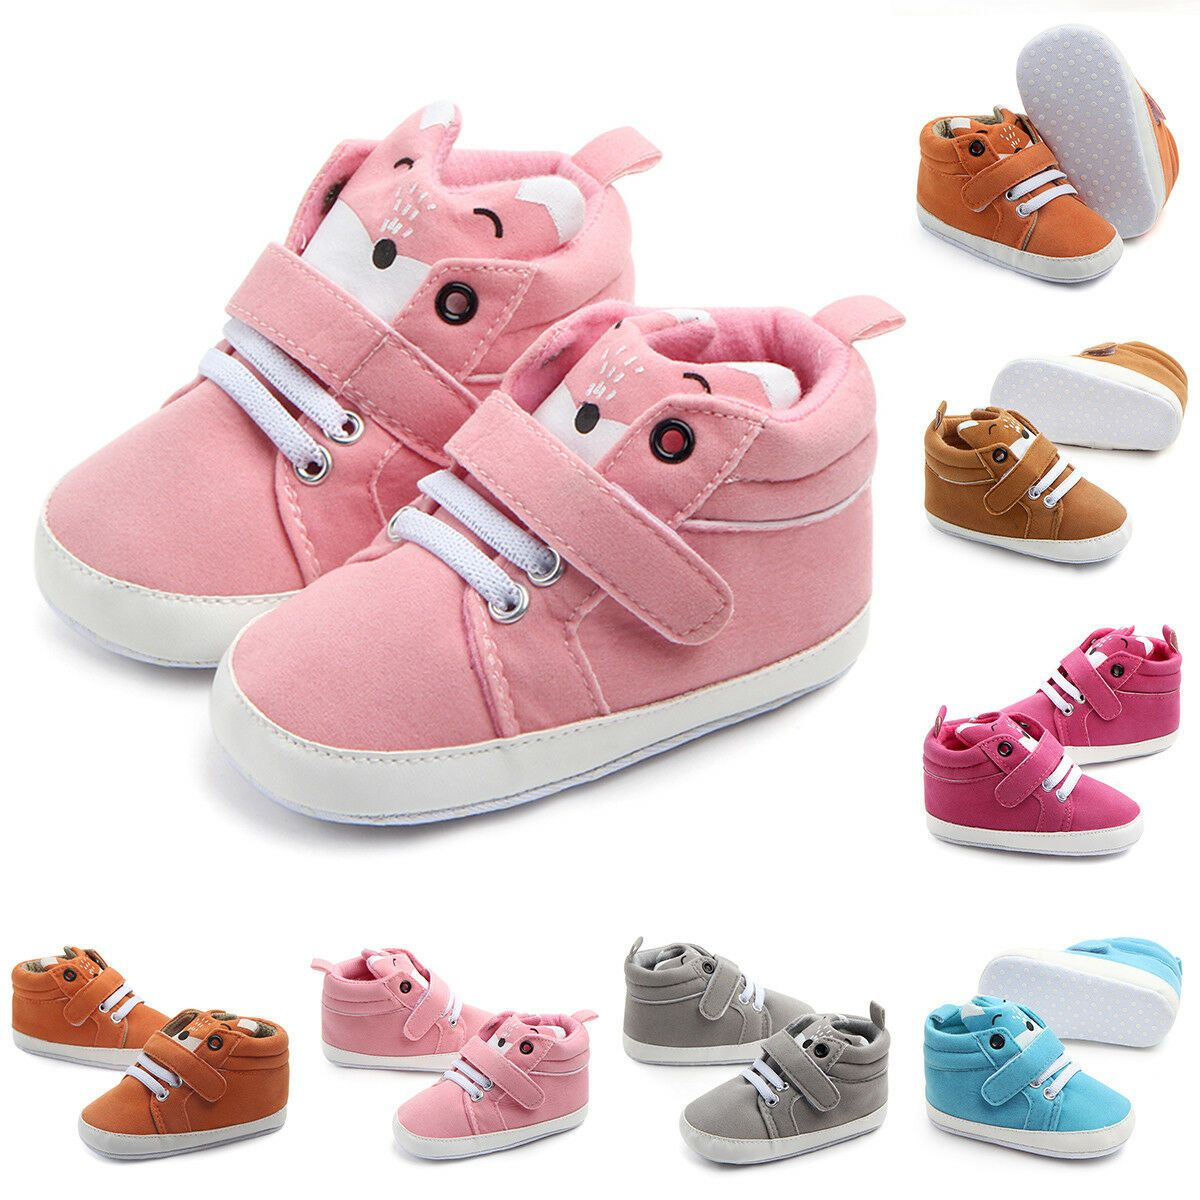 Newborn Infant Baby Girl Soft Sole Prewalker Sneakers Toddlers Anti-Slip Outdoor Shoes